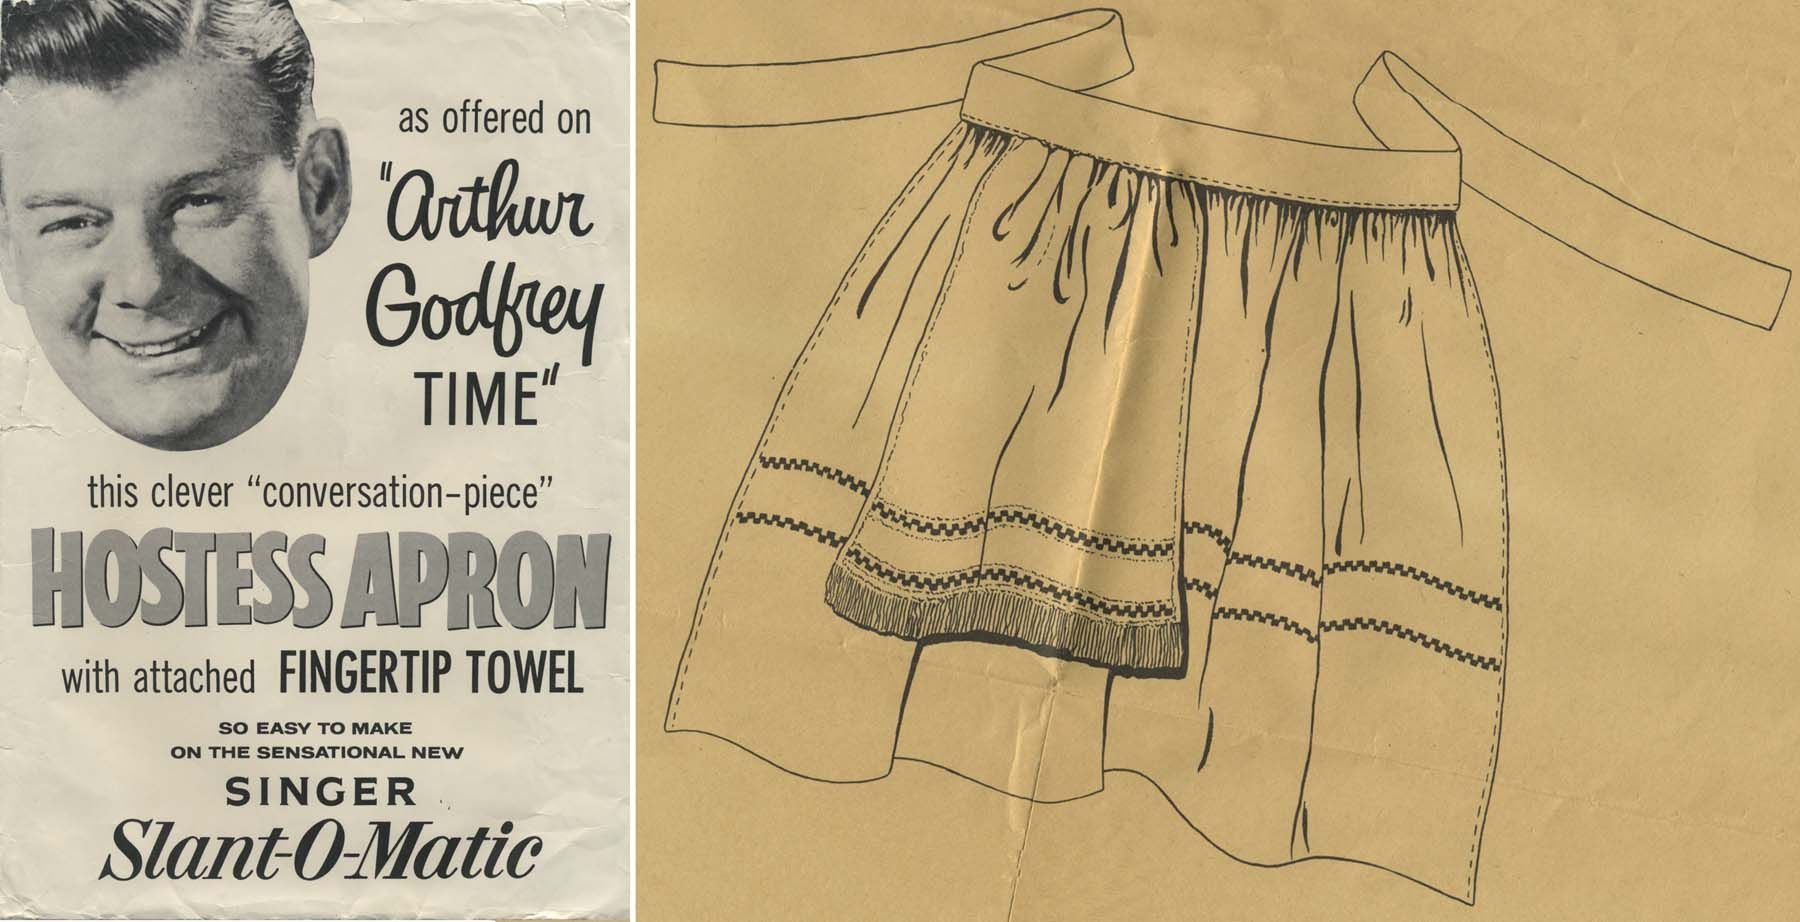 Vintage Apron Sewing Pattern | Hostess Apron with attached Fingertip Towel as offered on Arthur Godfrey Time | Year 1957 | One Size | Issued by the Singer Sewing Machine Company